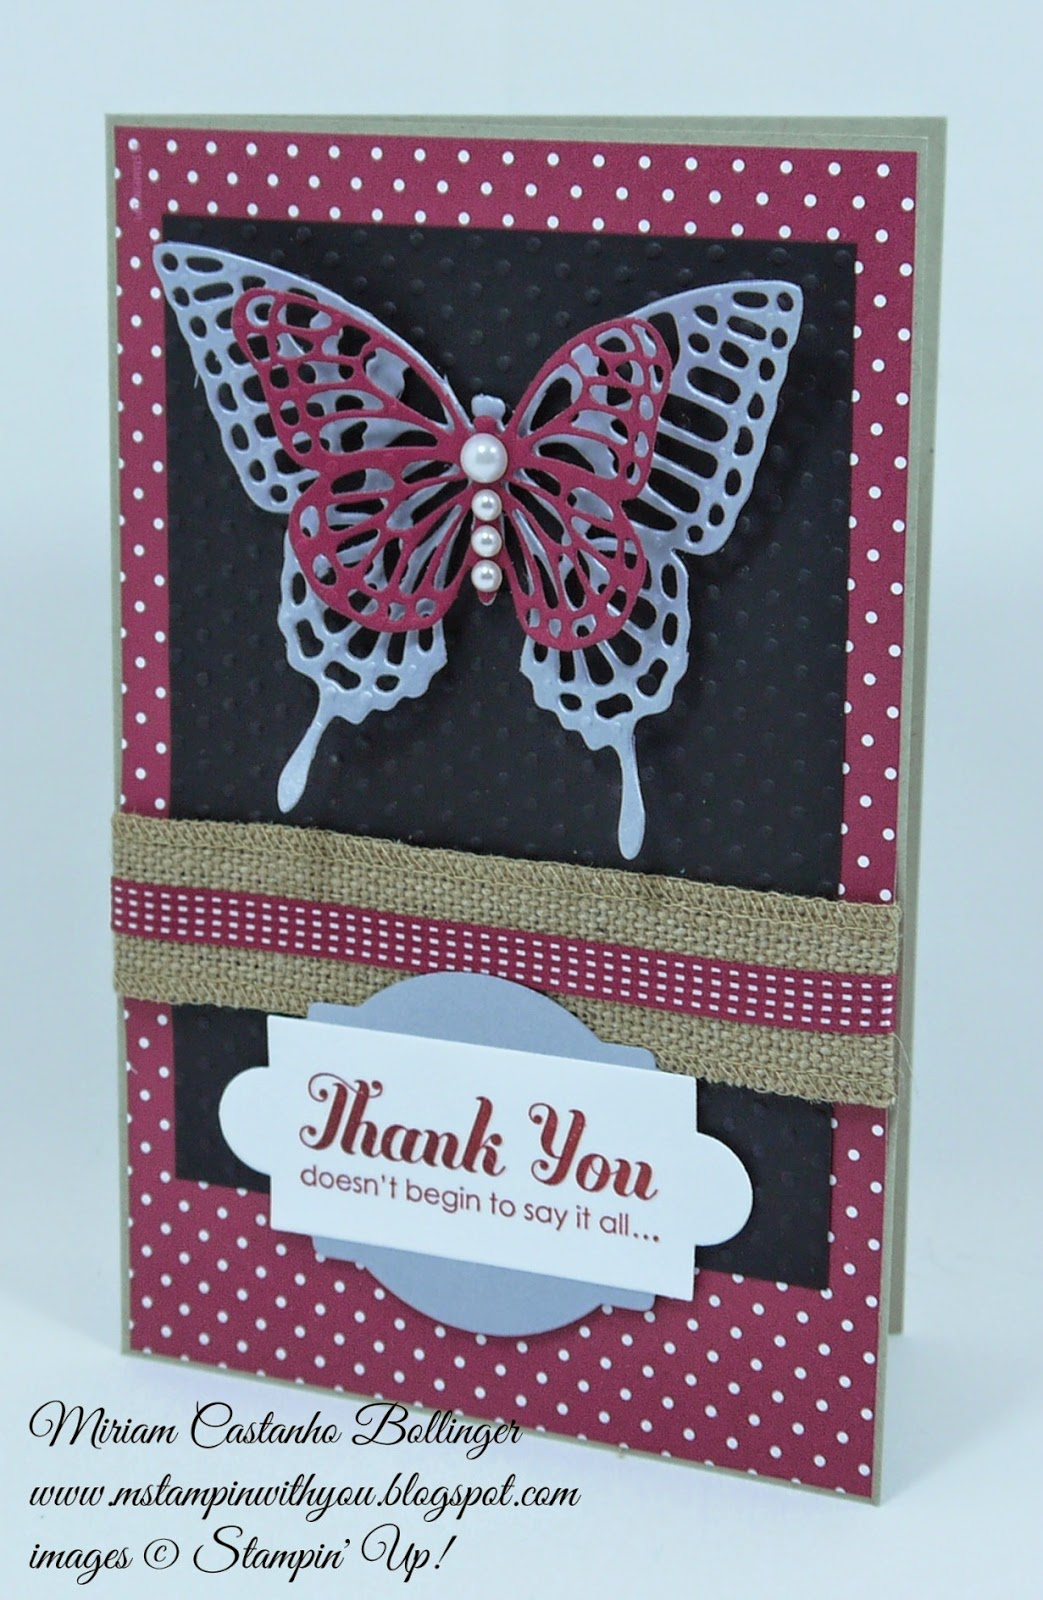 Miriam Castanho Bollinger, mstampinwithyou, stampin up, demonstrator, mm 377, brushed silver card stock, lots of thanks, big shot, butterflies thinlits die, apothecary accents framelit, deco labels collections, perfect polka dot, burlap ribbon, su